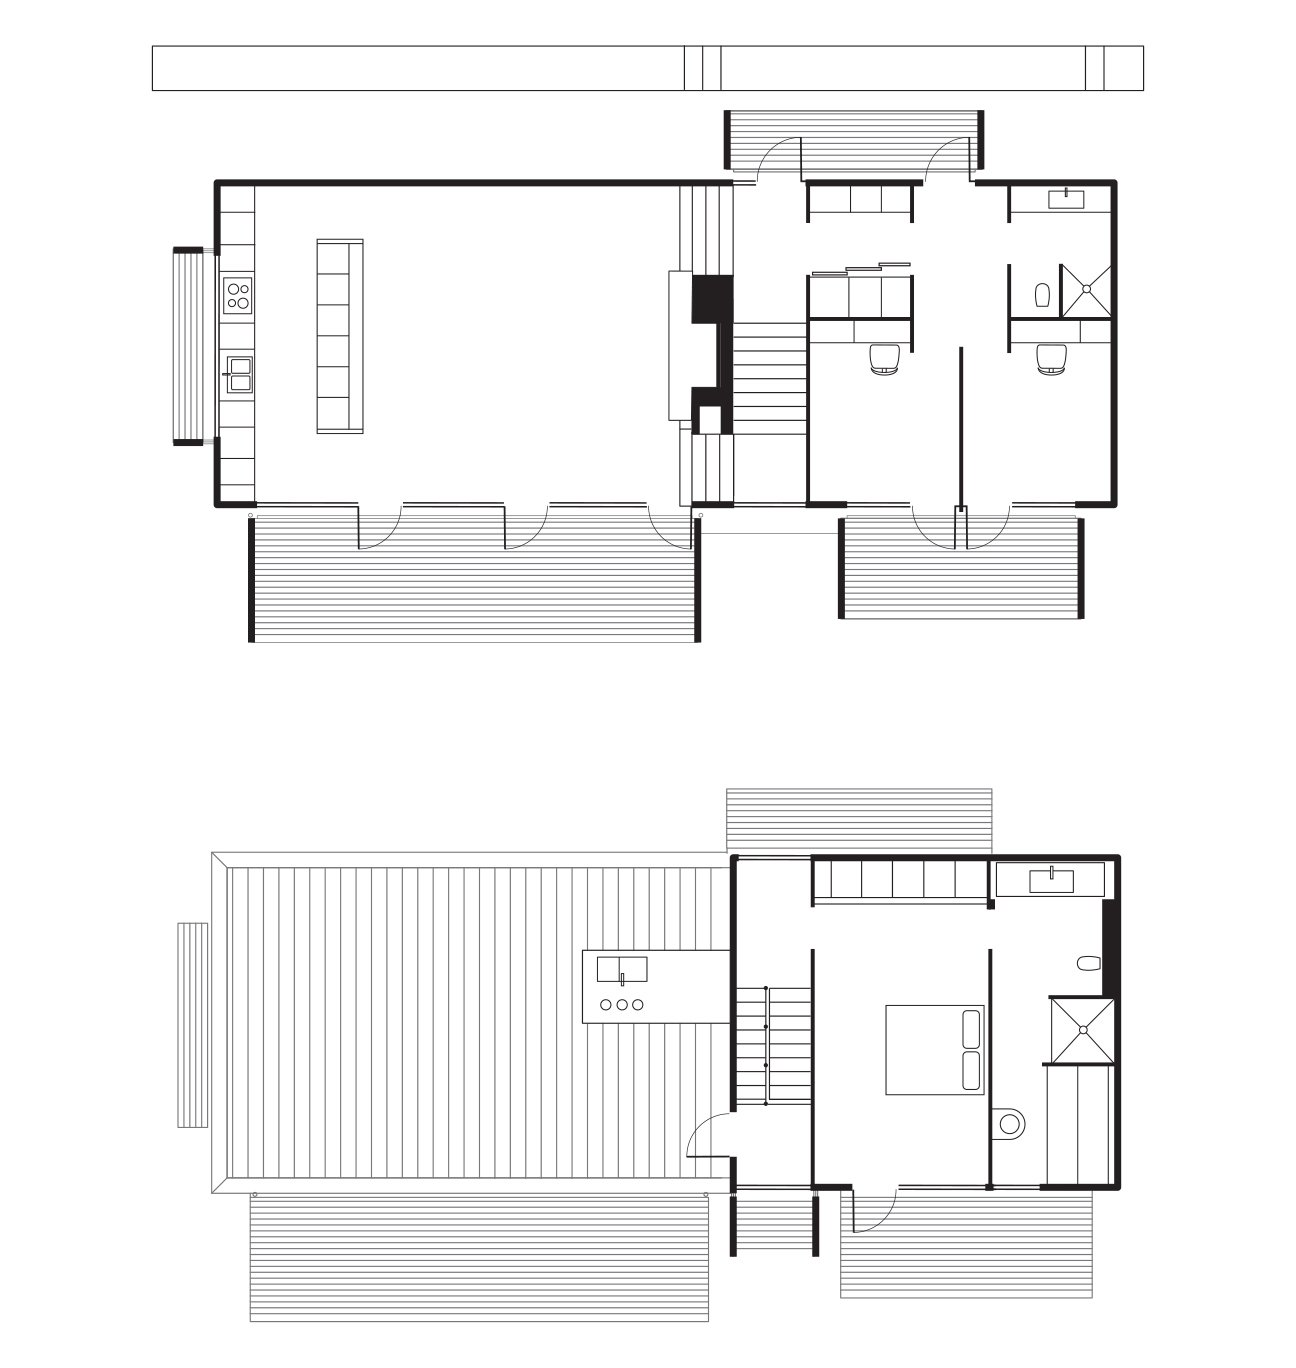 Fjällbacka House Floor Plan  A Kitchen  B Living-Dining Room  C Bedroom  D Bathroom  E Roof Deck  F Master Bedroom  G Master Bathroom  Photo 8 of 8 in A Pine Box Vacation Home in Sweden